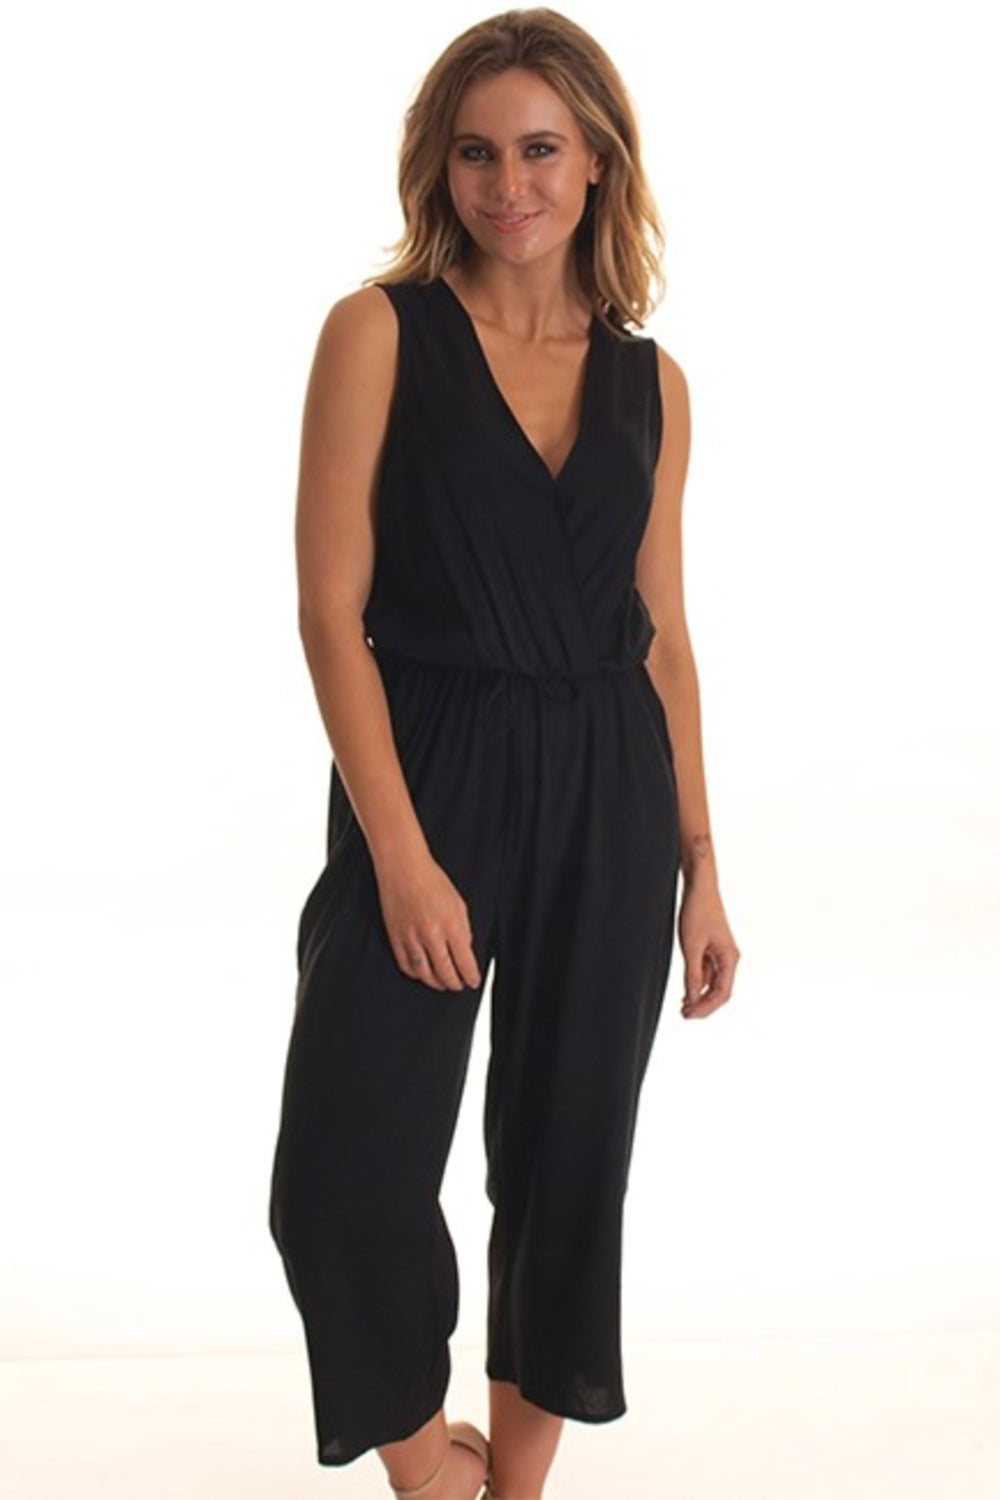 1645b56322 Freez - Palazzo Jumpsuit - Black - Pizazz Boutique - Night Out - Party